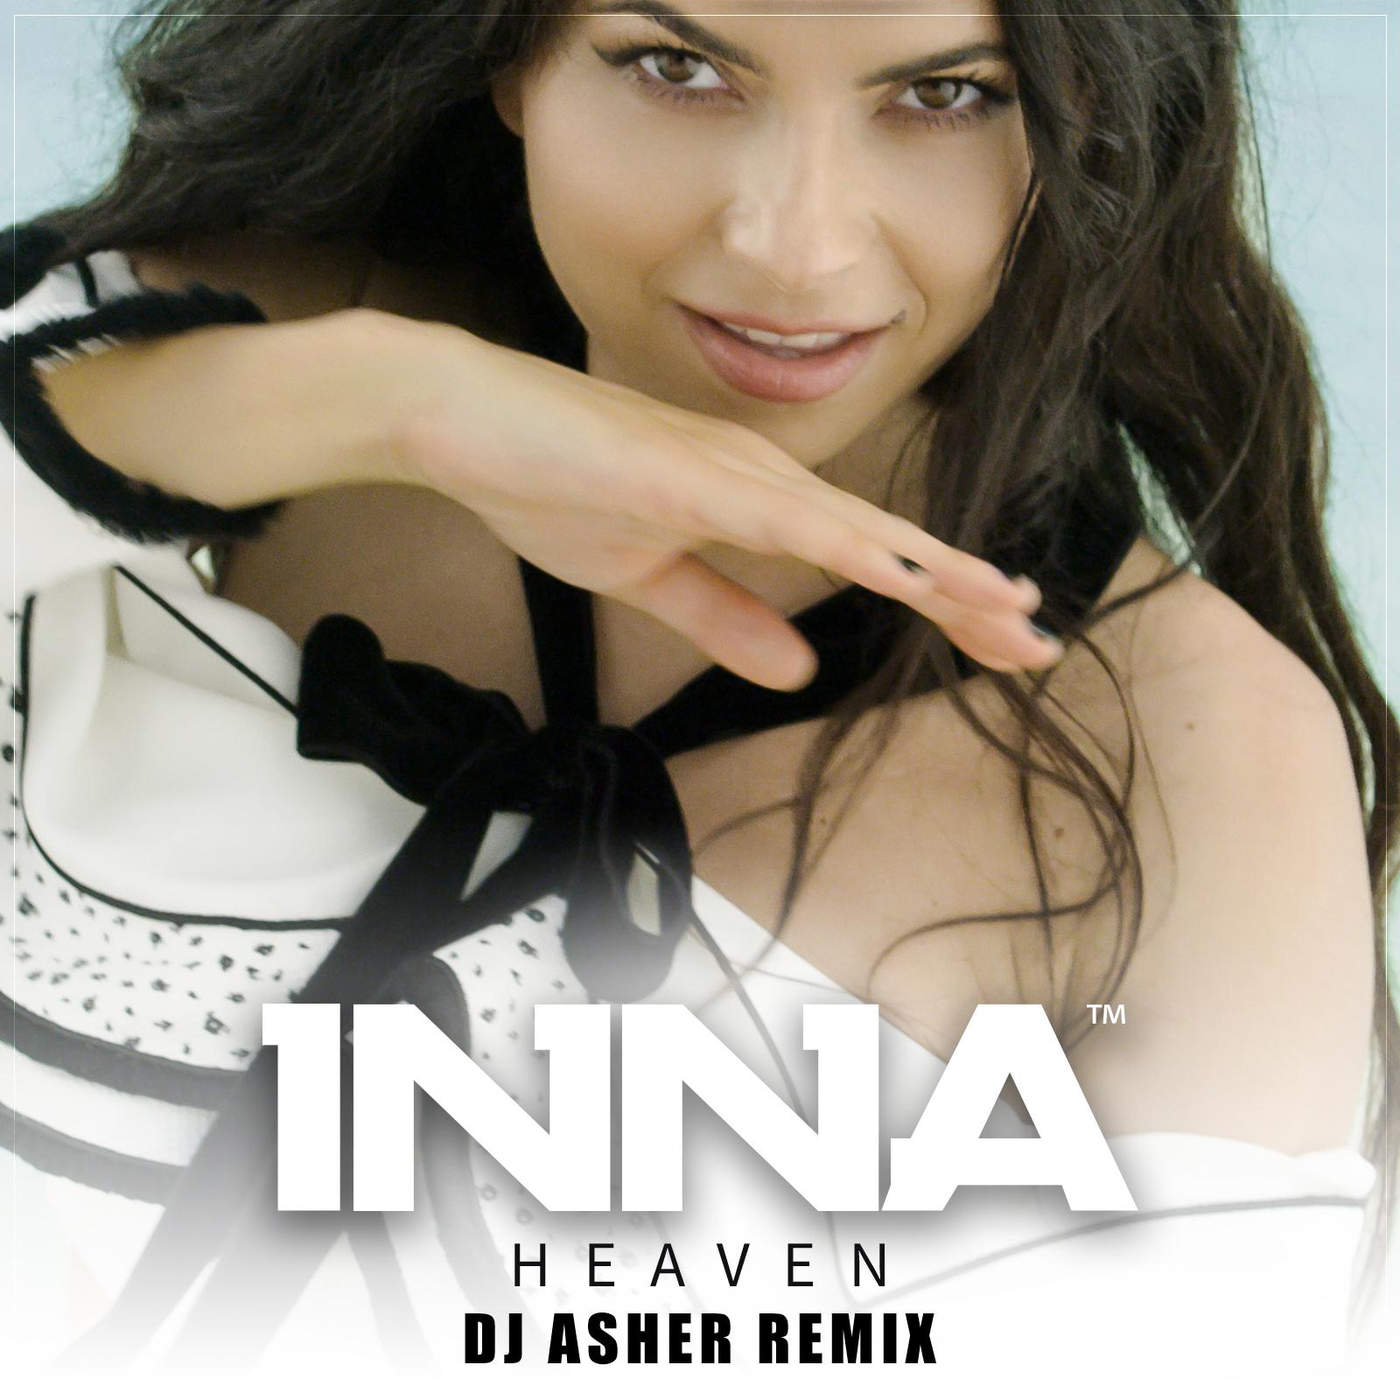 Inna - Heaven (DJ Asher Remix) - Single [iTunes Plus AAC M4A] (2016)